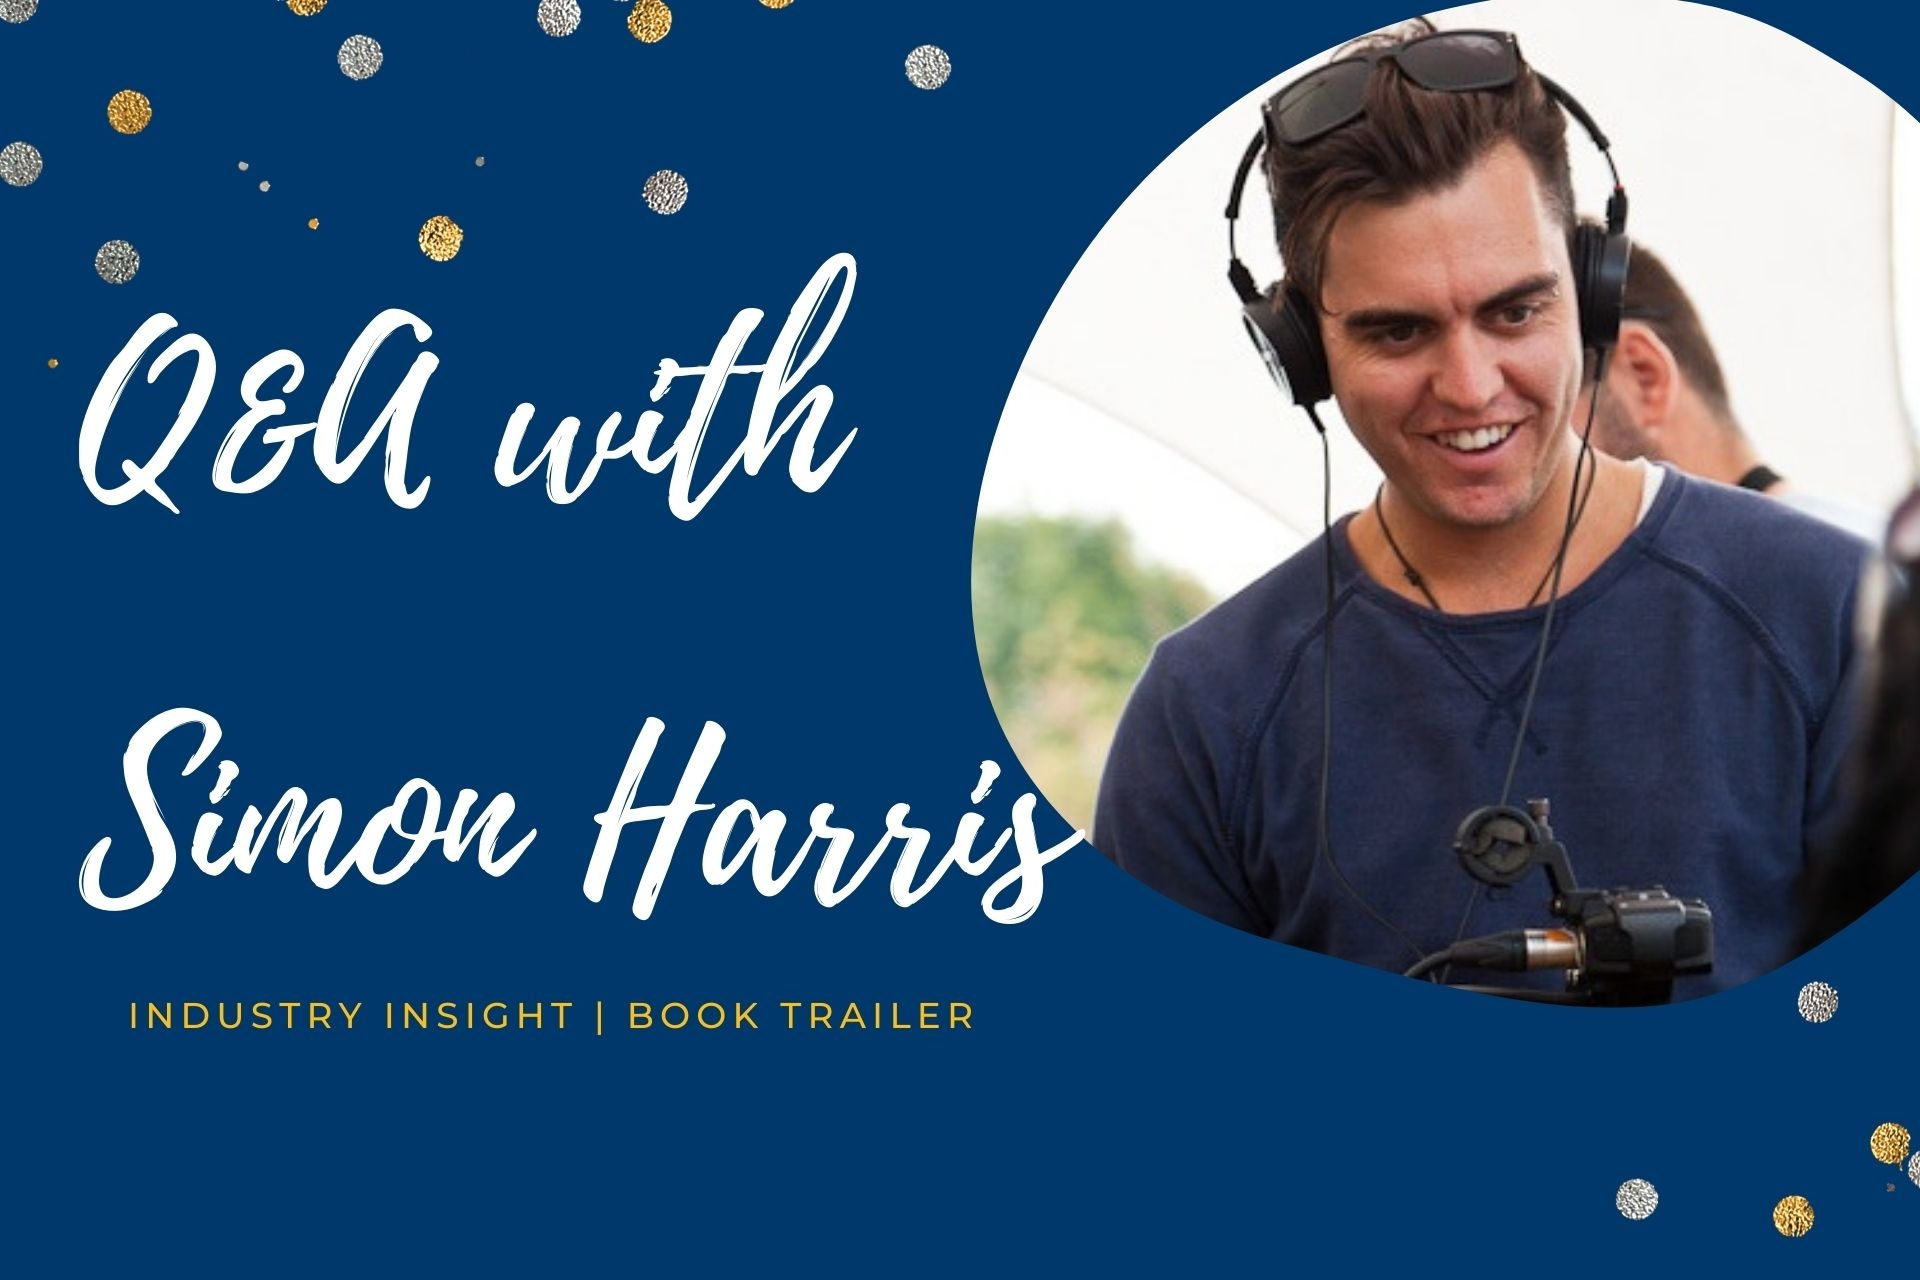 Industry Insight: Q&A with Simon Harris (Book Trailer and Video Director)